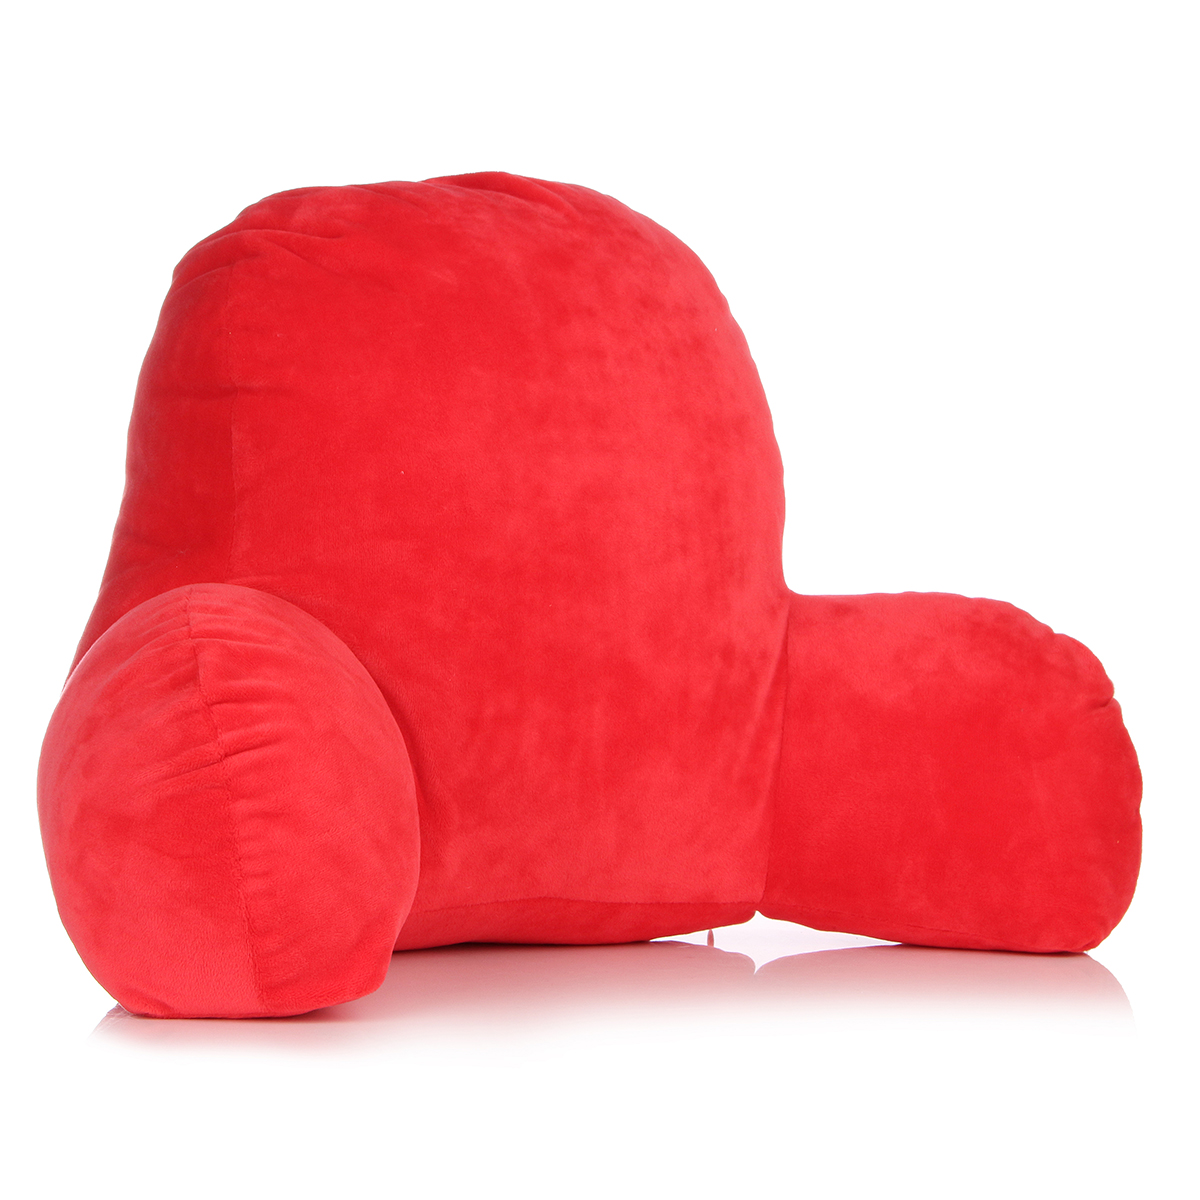 3 Colors Micro Reading and Bedrest Lounger Watching TV Sitting Back Supprt Pillow with Waist pillow Arms Soft But Firmly Stuffed Cotton Fill